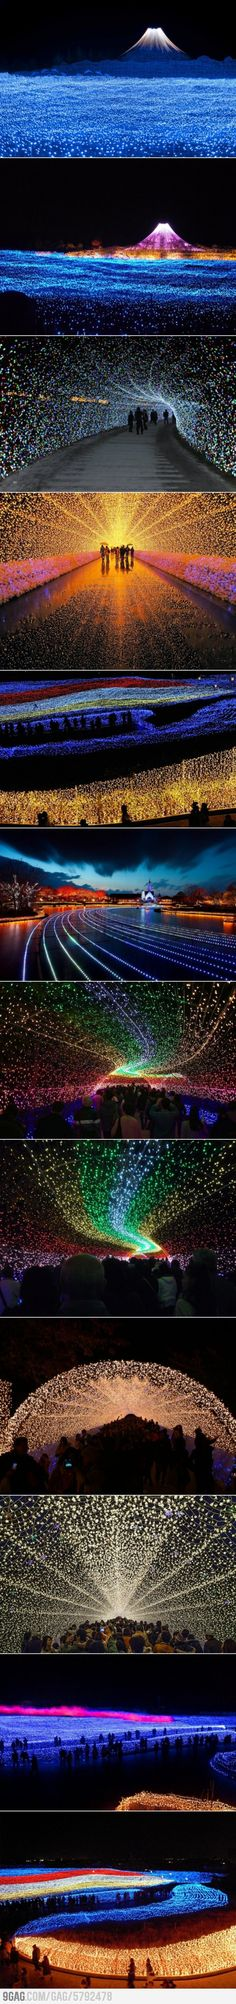 Winter Light Festival is nothing short of amazing HQ Photos) Japan's Winter Lights Festival - want to go.Japan's Winter Lights Festival - want to go. Places To Travel, Places To See, Places Around The World, Around The Worlds, Winter Light Festival, Japon Tokyo, Tokyo Skytree, Monte Fuji, Image Nature